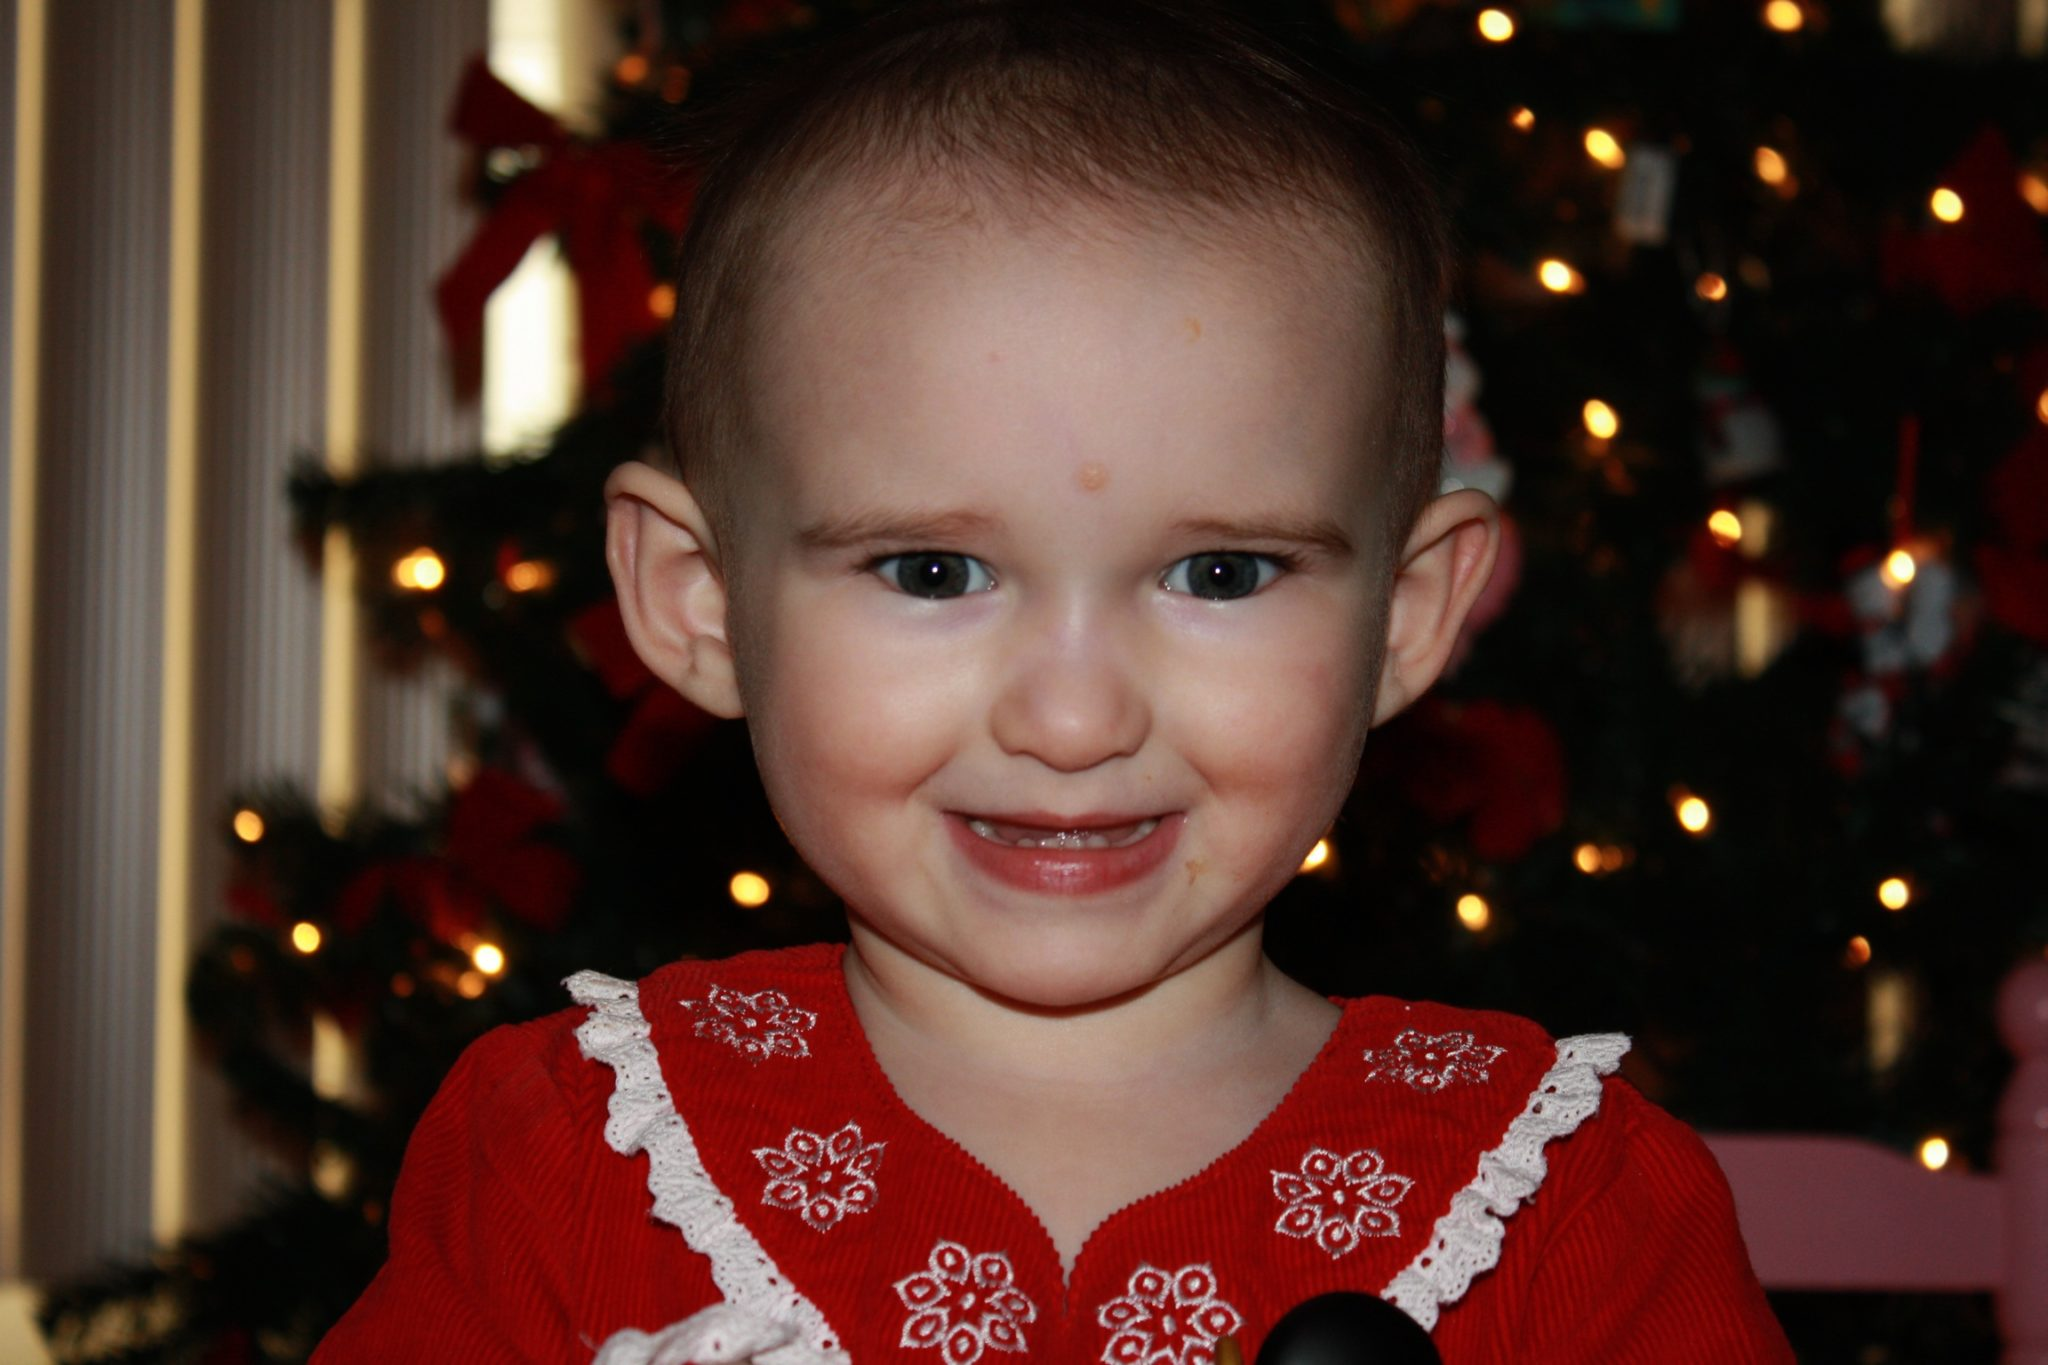 And who could forget, Emma - Baby #1 Who Still Wasn't Sleeping Through the Night By Her Second Christmas